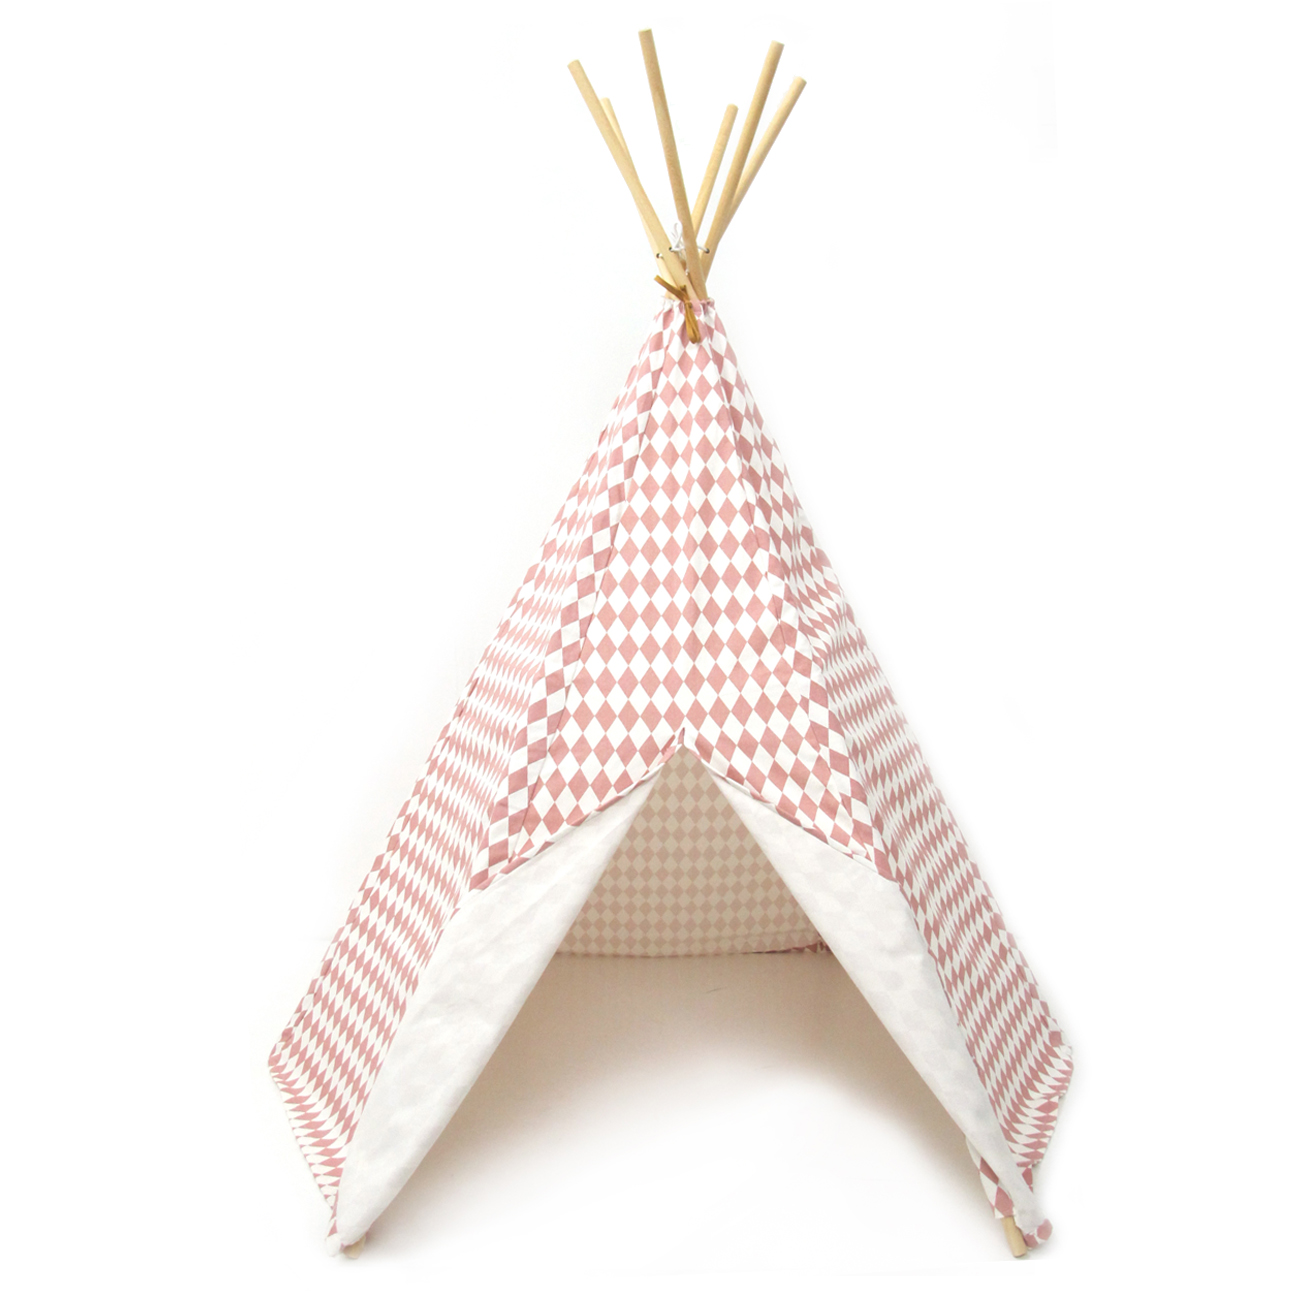 tipi arizona losanges rose nobodinoz pour chambre enfant les enfants du design. Black Bedroom Furniture Sets. Home Design Ideas